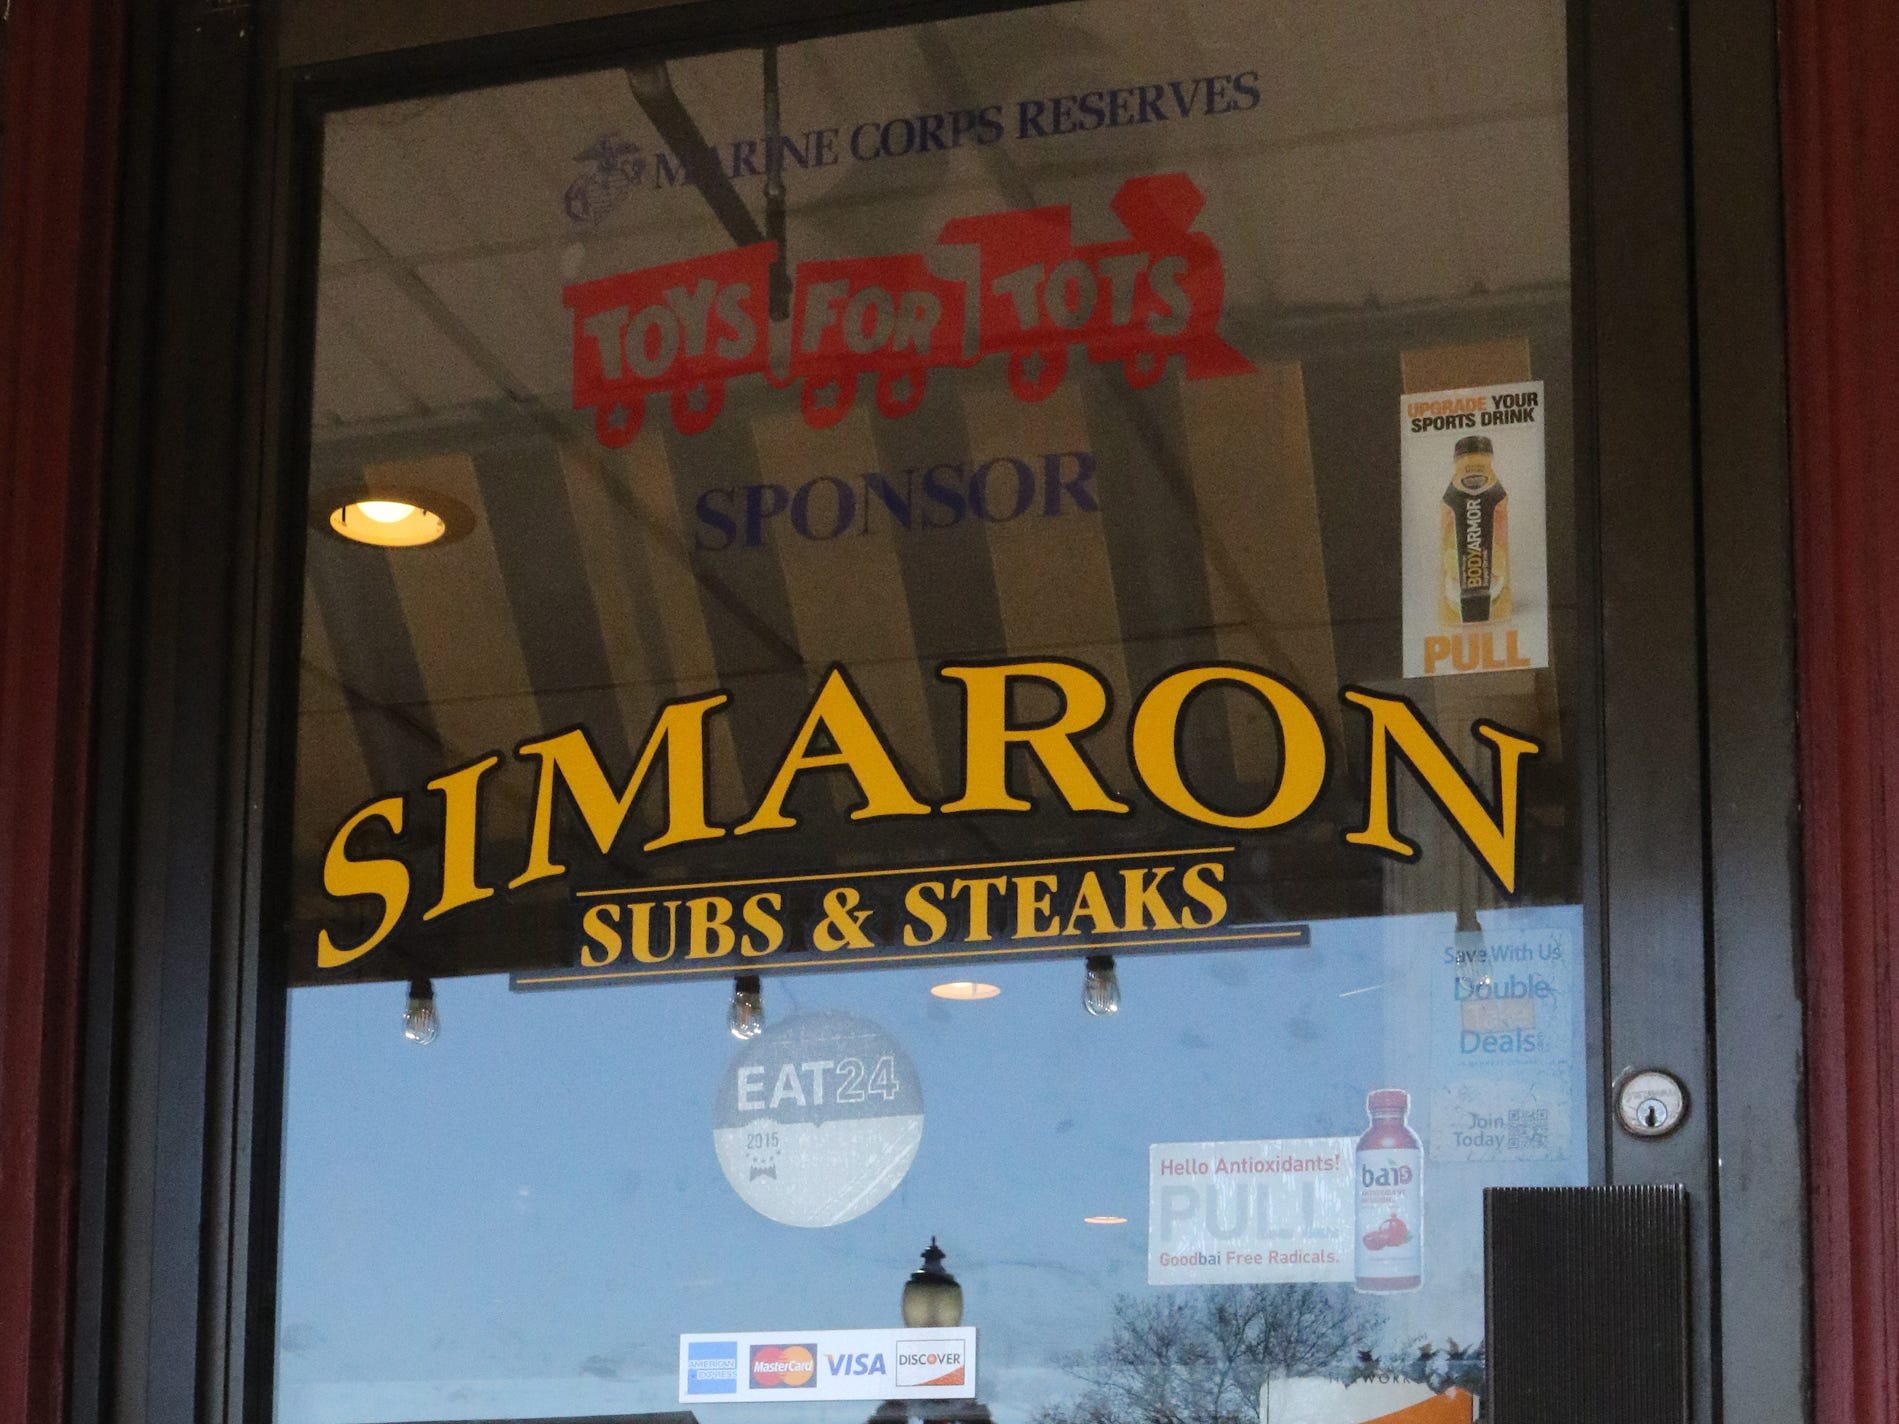 Simaron Pizza & Steak Shop owner Edmound Yousef Khanian pened up his Dover restaurant on Thanksgiving Day to feed those who couldn't afford dinner or who were alone on the holiday.